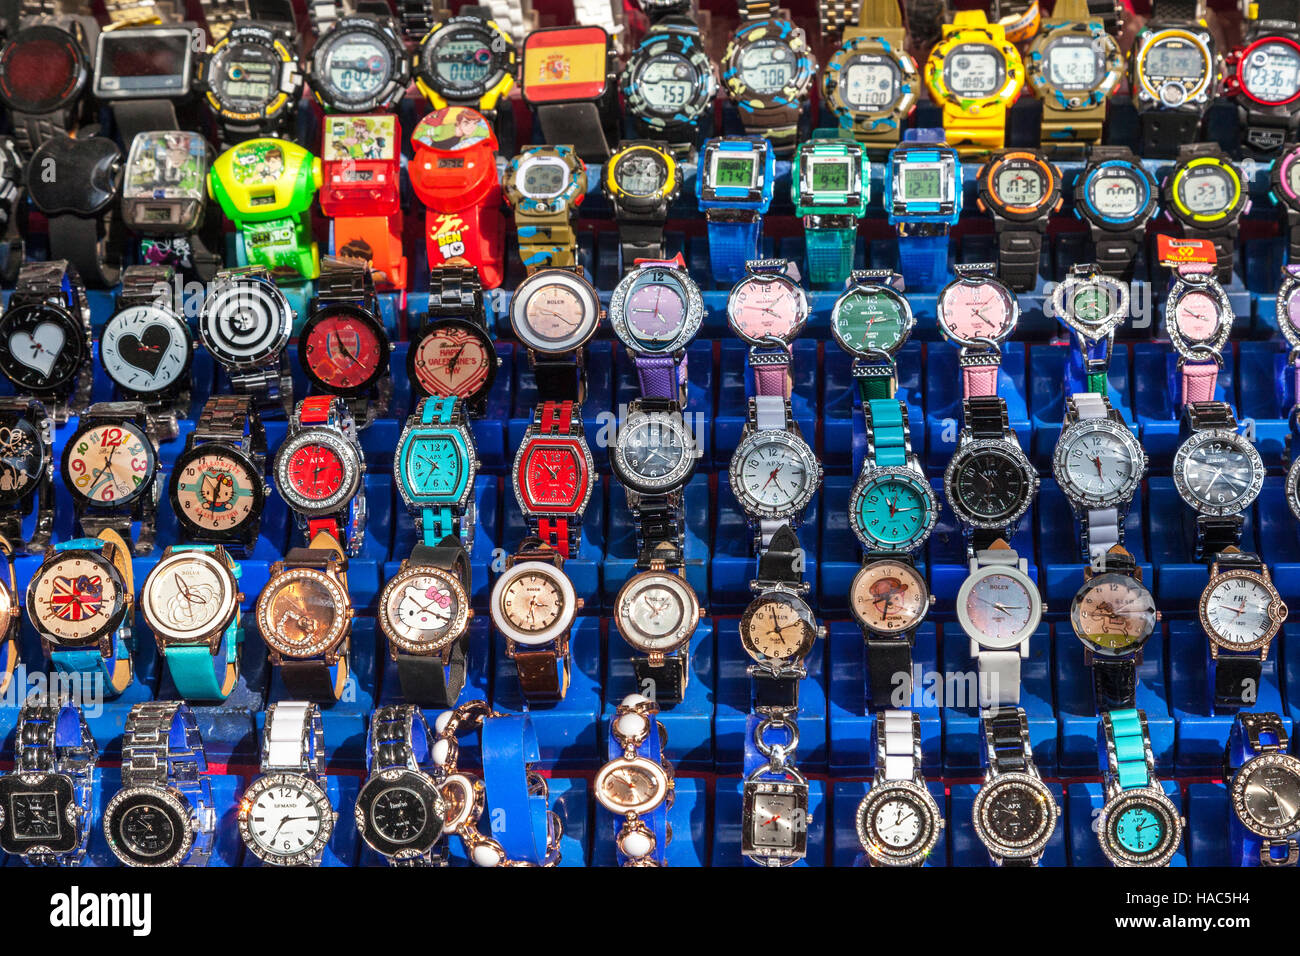 Colorful watches for sale on a street in Kathmandu - Stock Image